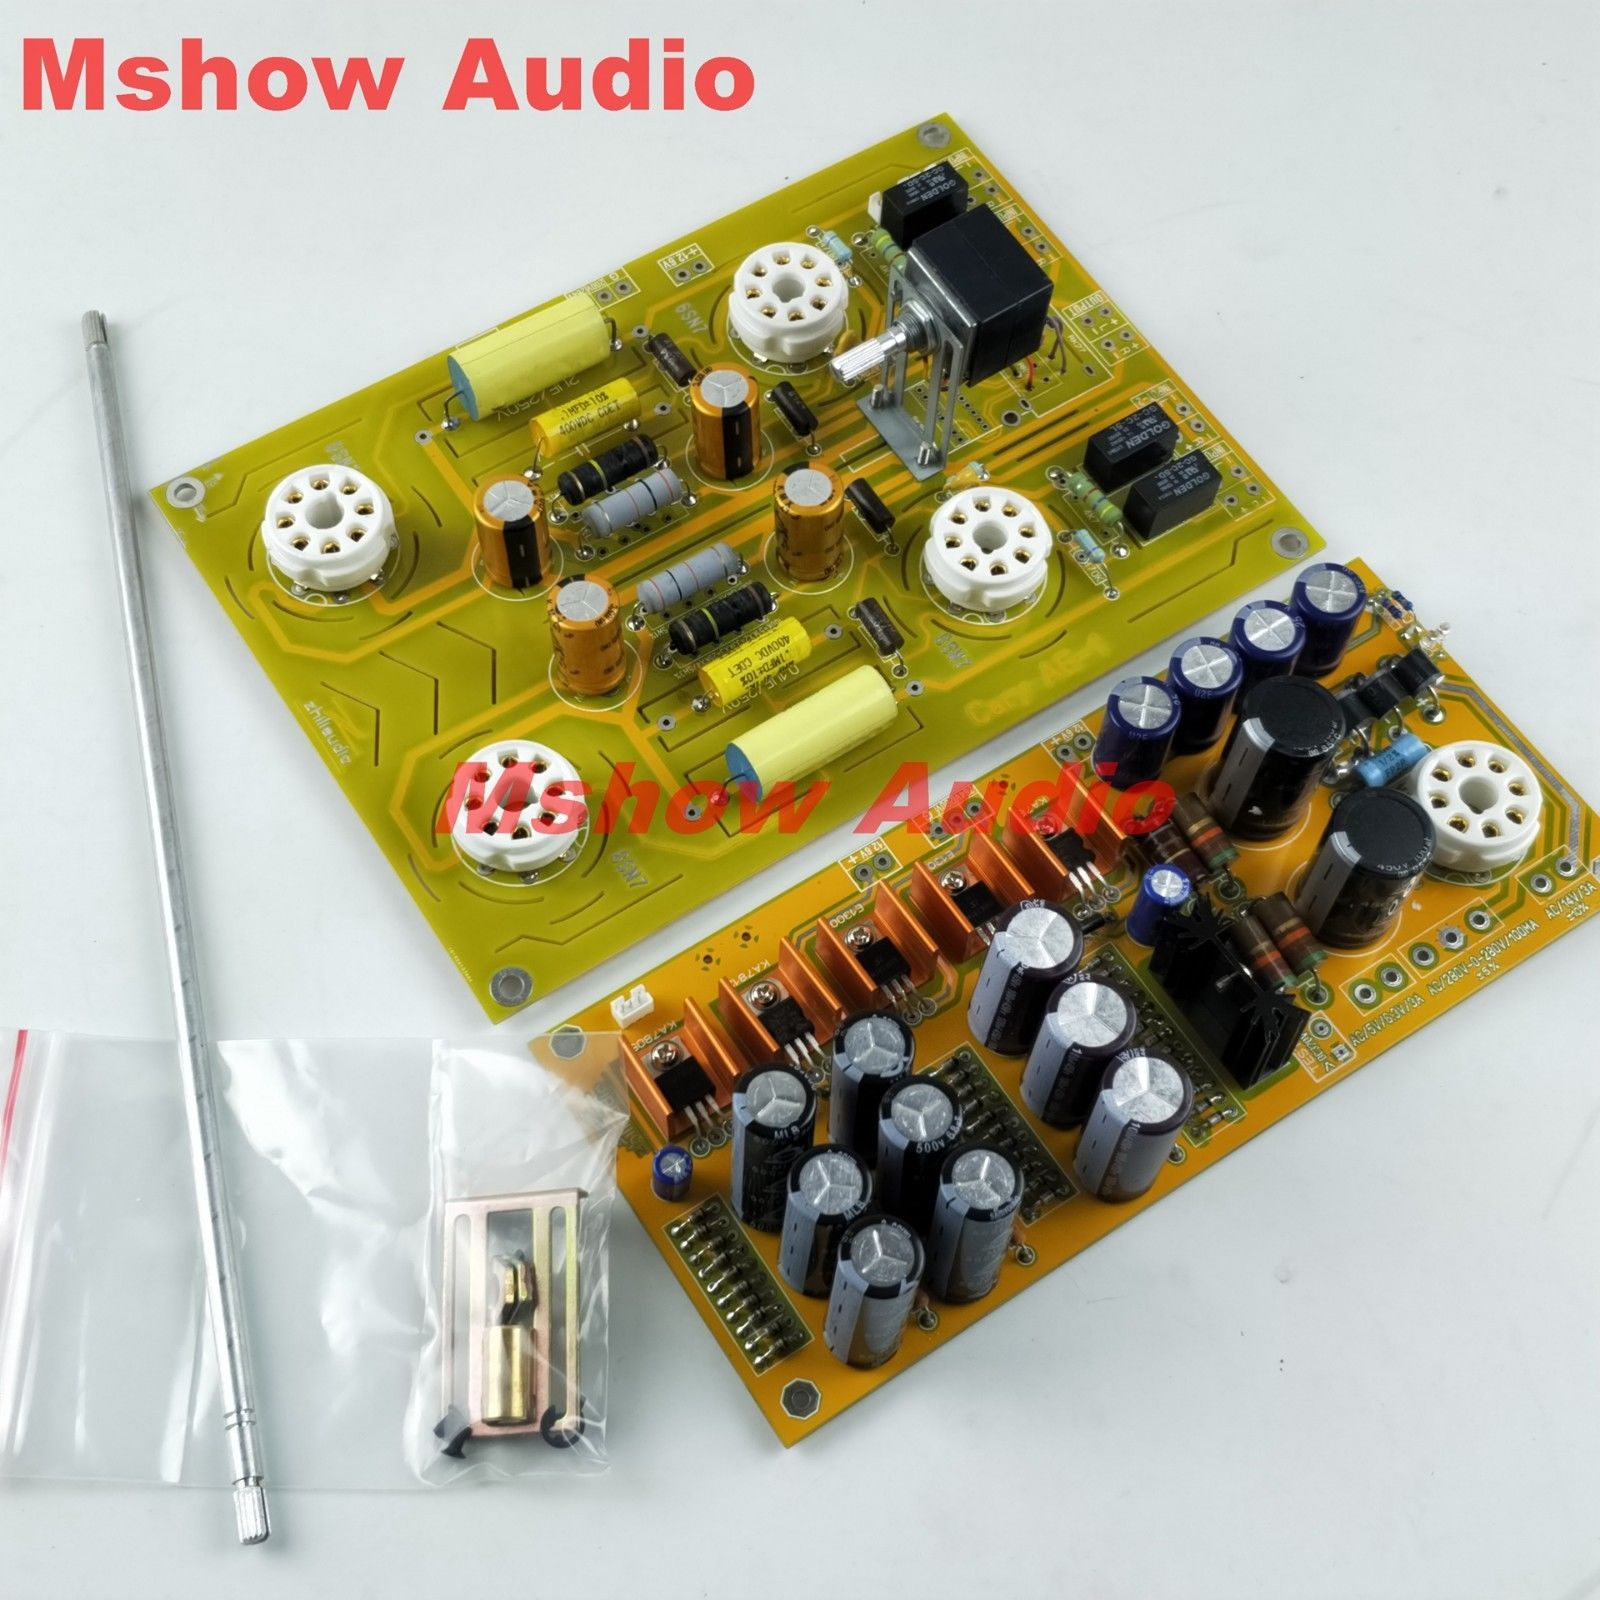 HIFI 6SN7 Tube preamplifier Preamp assembled Board refer Famous circuit Cary pre-amp Audio by ZHI assembled upgraded n5 preamplifier board hifi amp board with 2134 opa